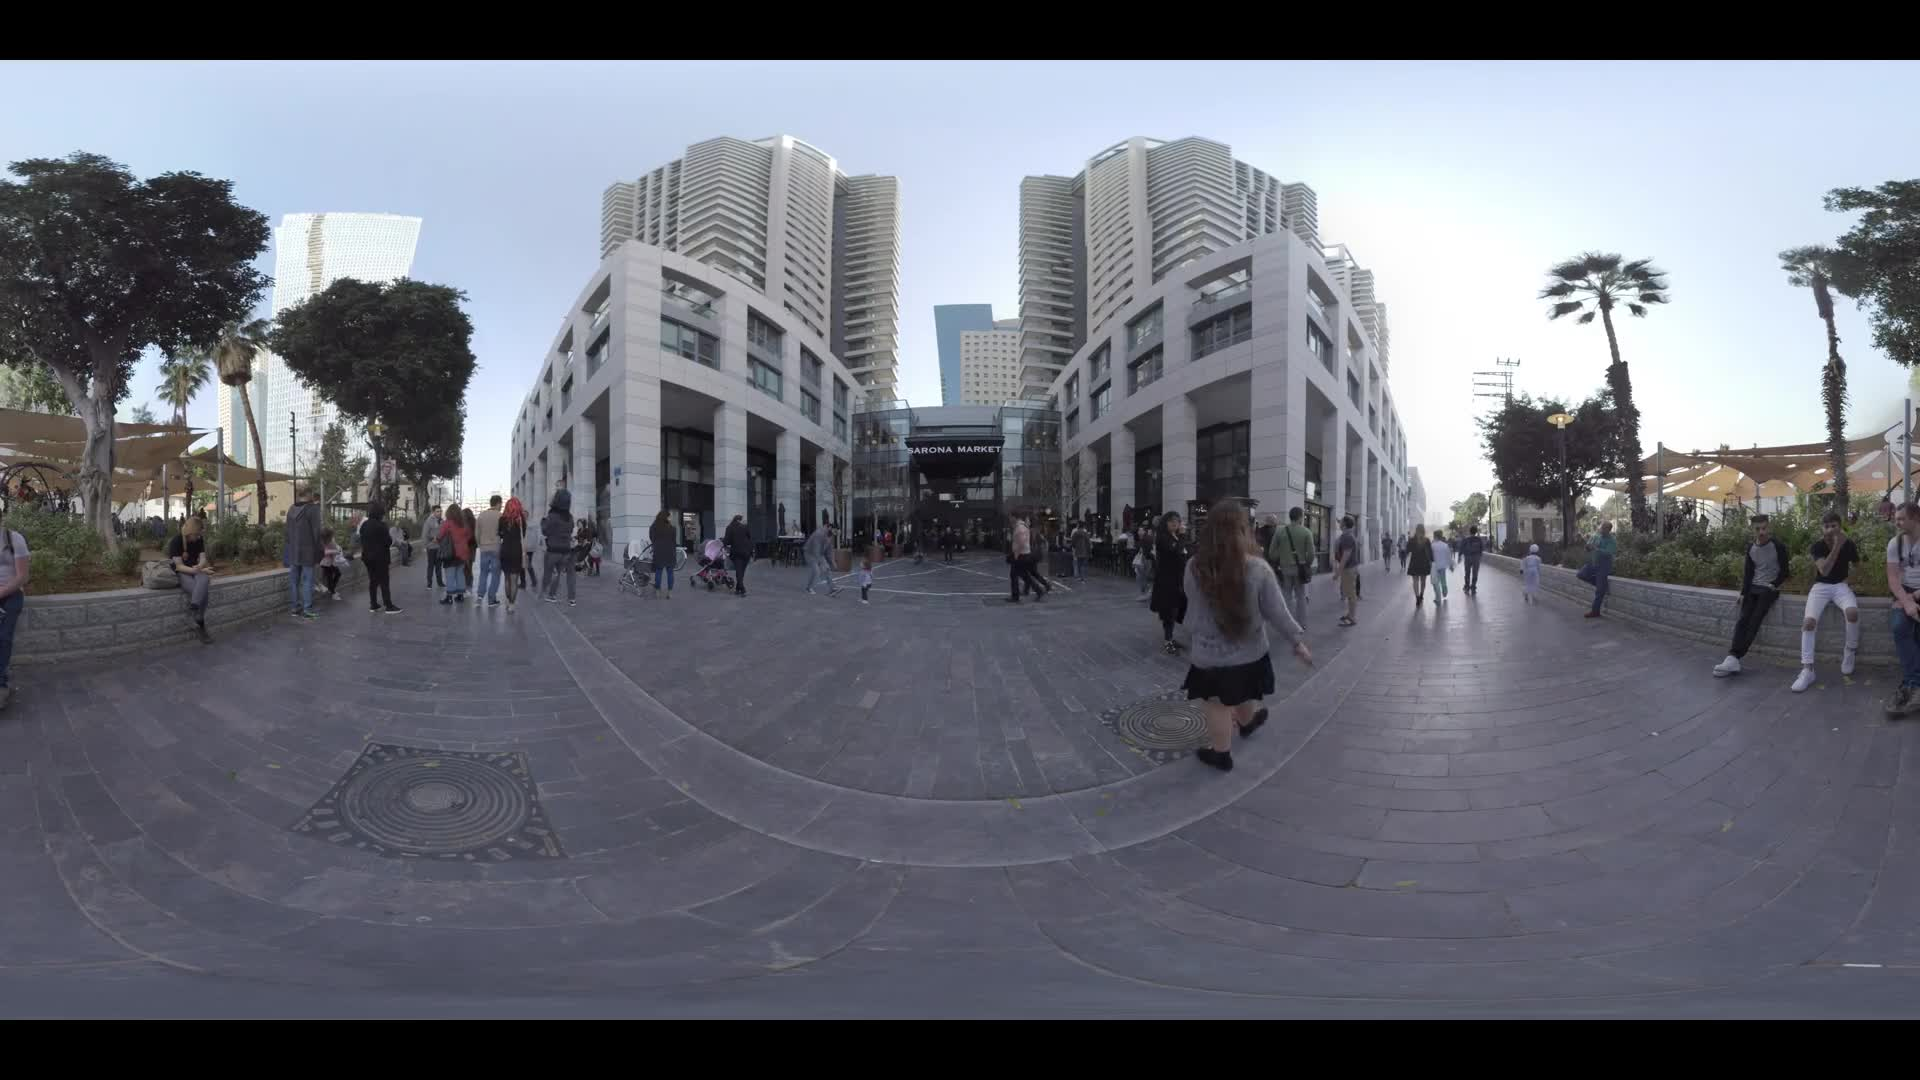 TEL AVIV, ISRAEL - MARCH 10, 2017: 360 VR video. View to Sarona Market building and people in the street and near the entrance. Israel largest, most unique indoor culinary complex with 91 shops, stalls and restaurants